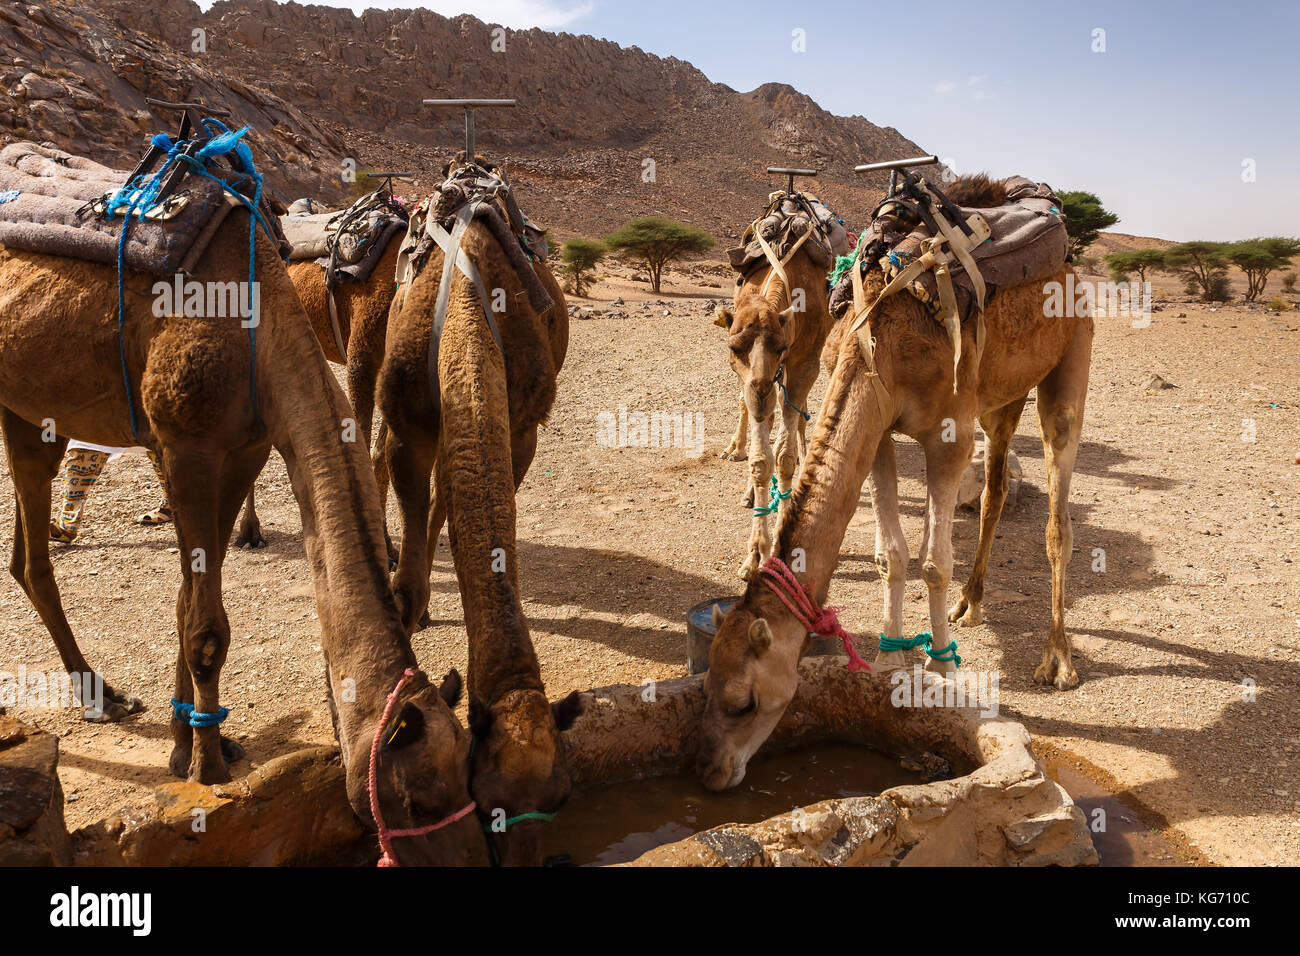 camels drink water from the well - Stock Image